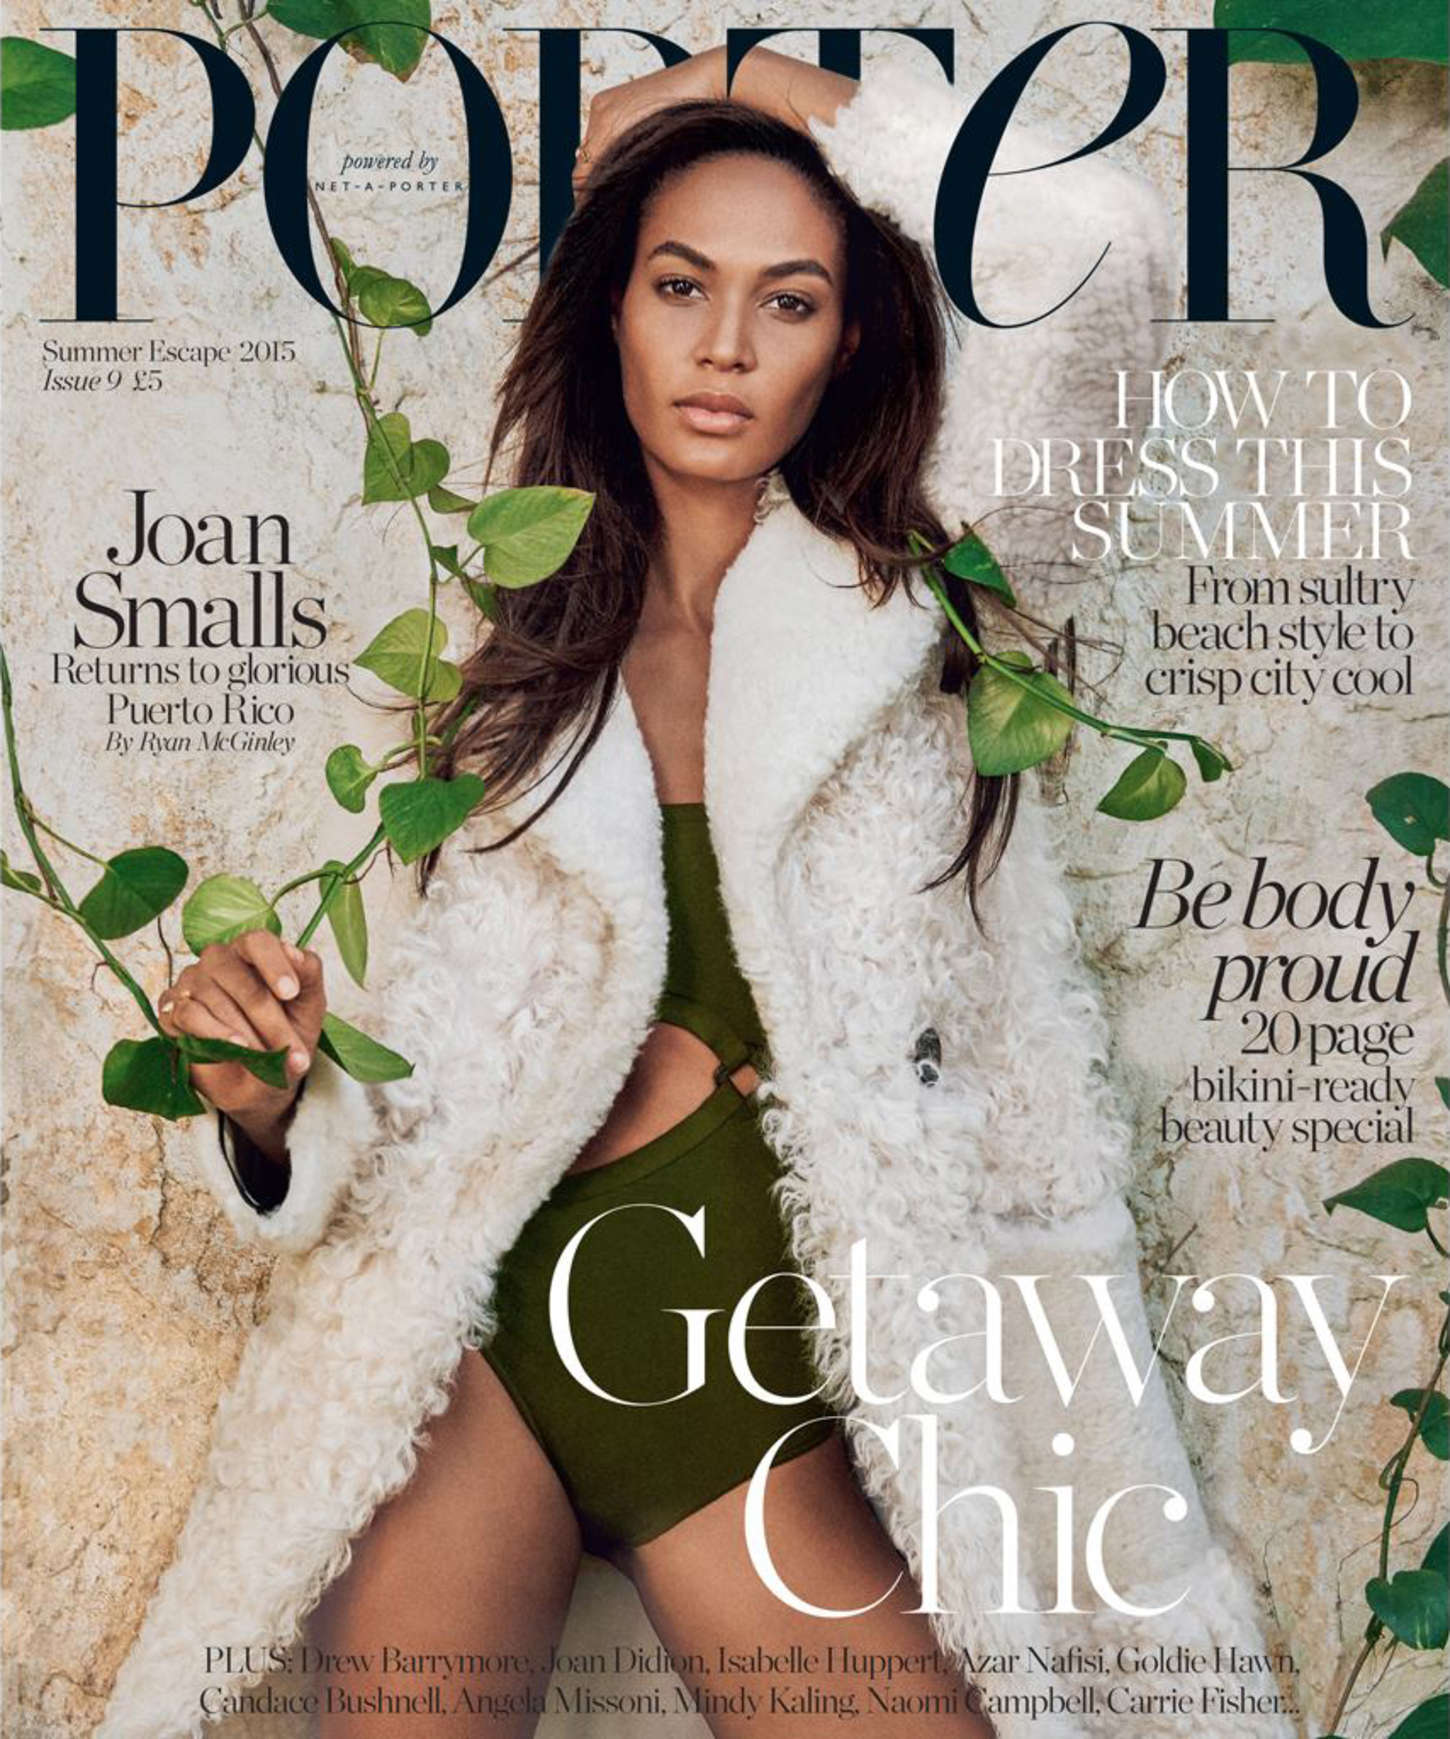 Le Meilleur Joan Smalls Porter Magazine Summer Escape 2015 Ce Mois Ci